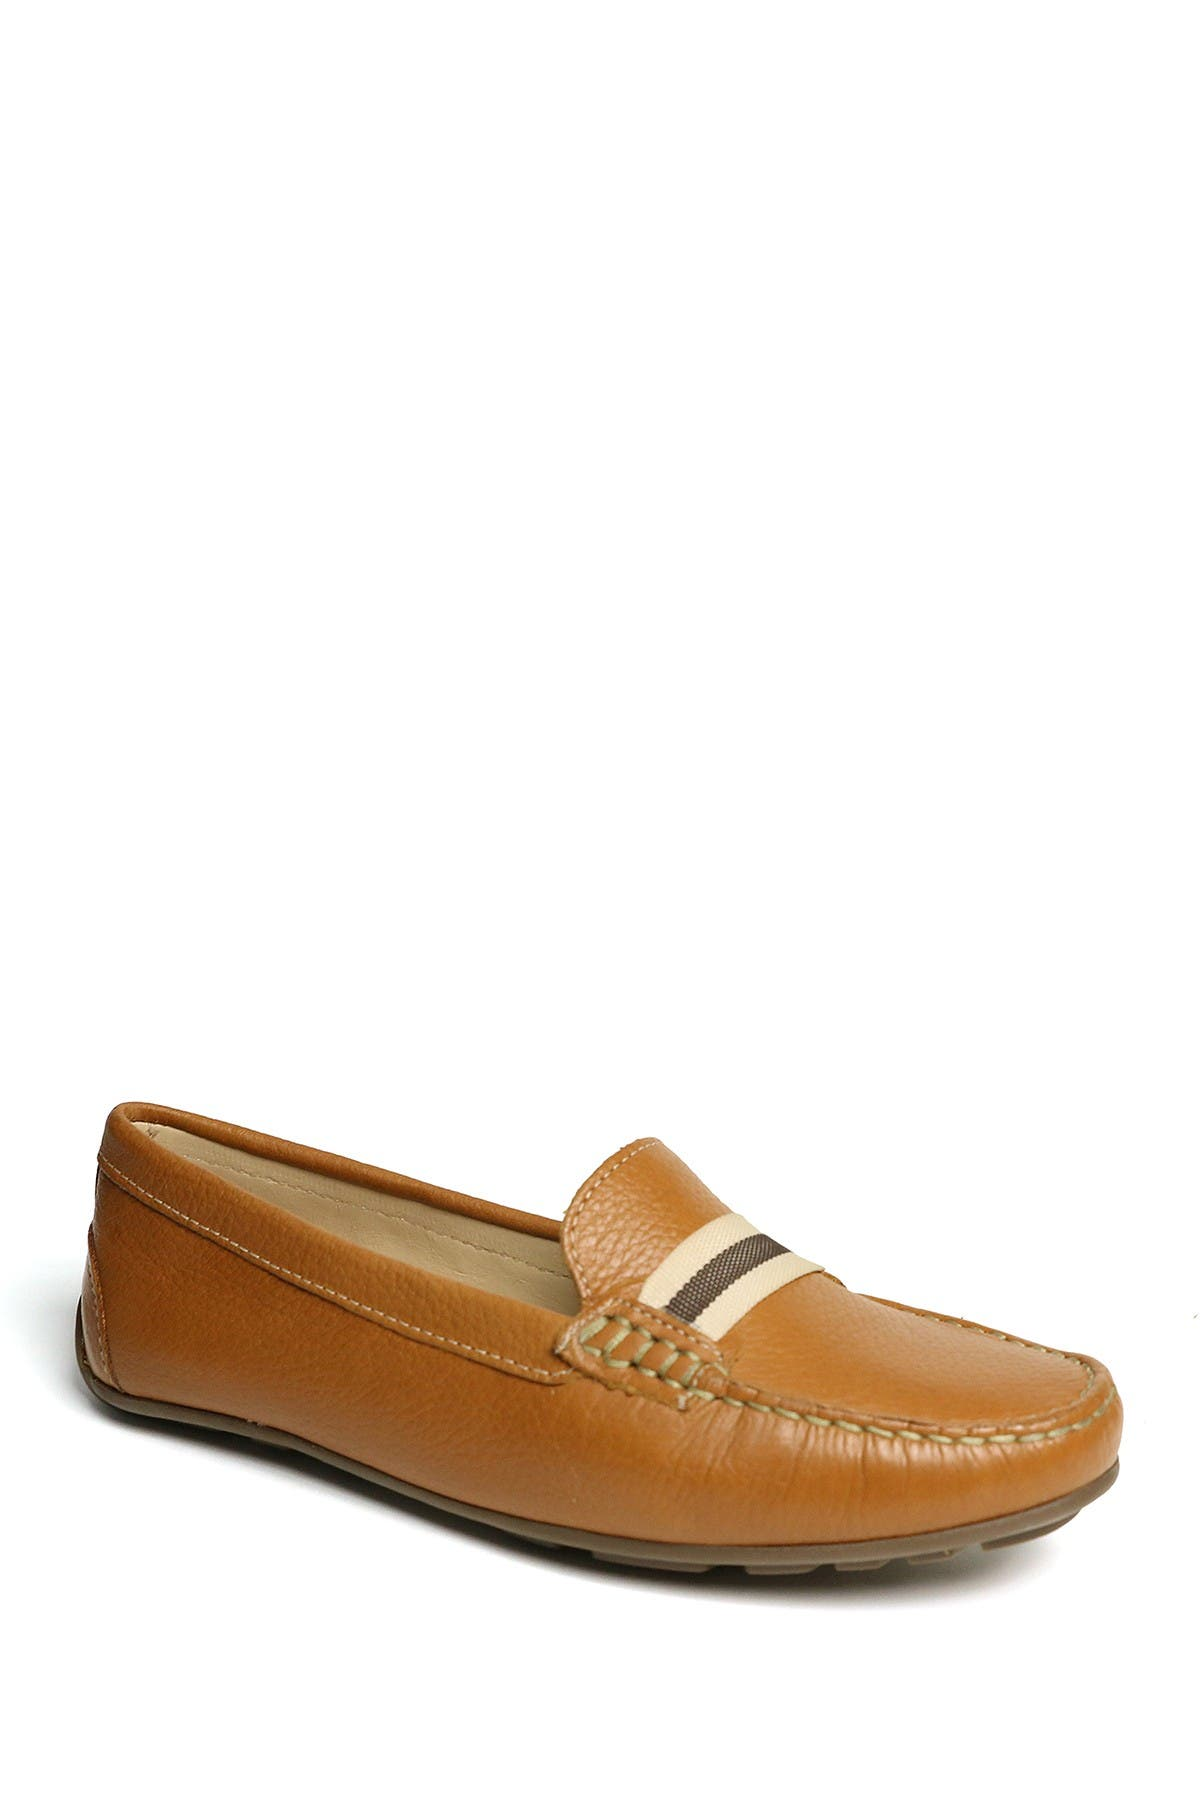 Image of Marc Joseph New York Mulberry 2 Grow Grain Driving Loafer